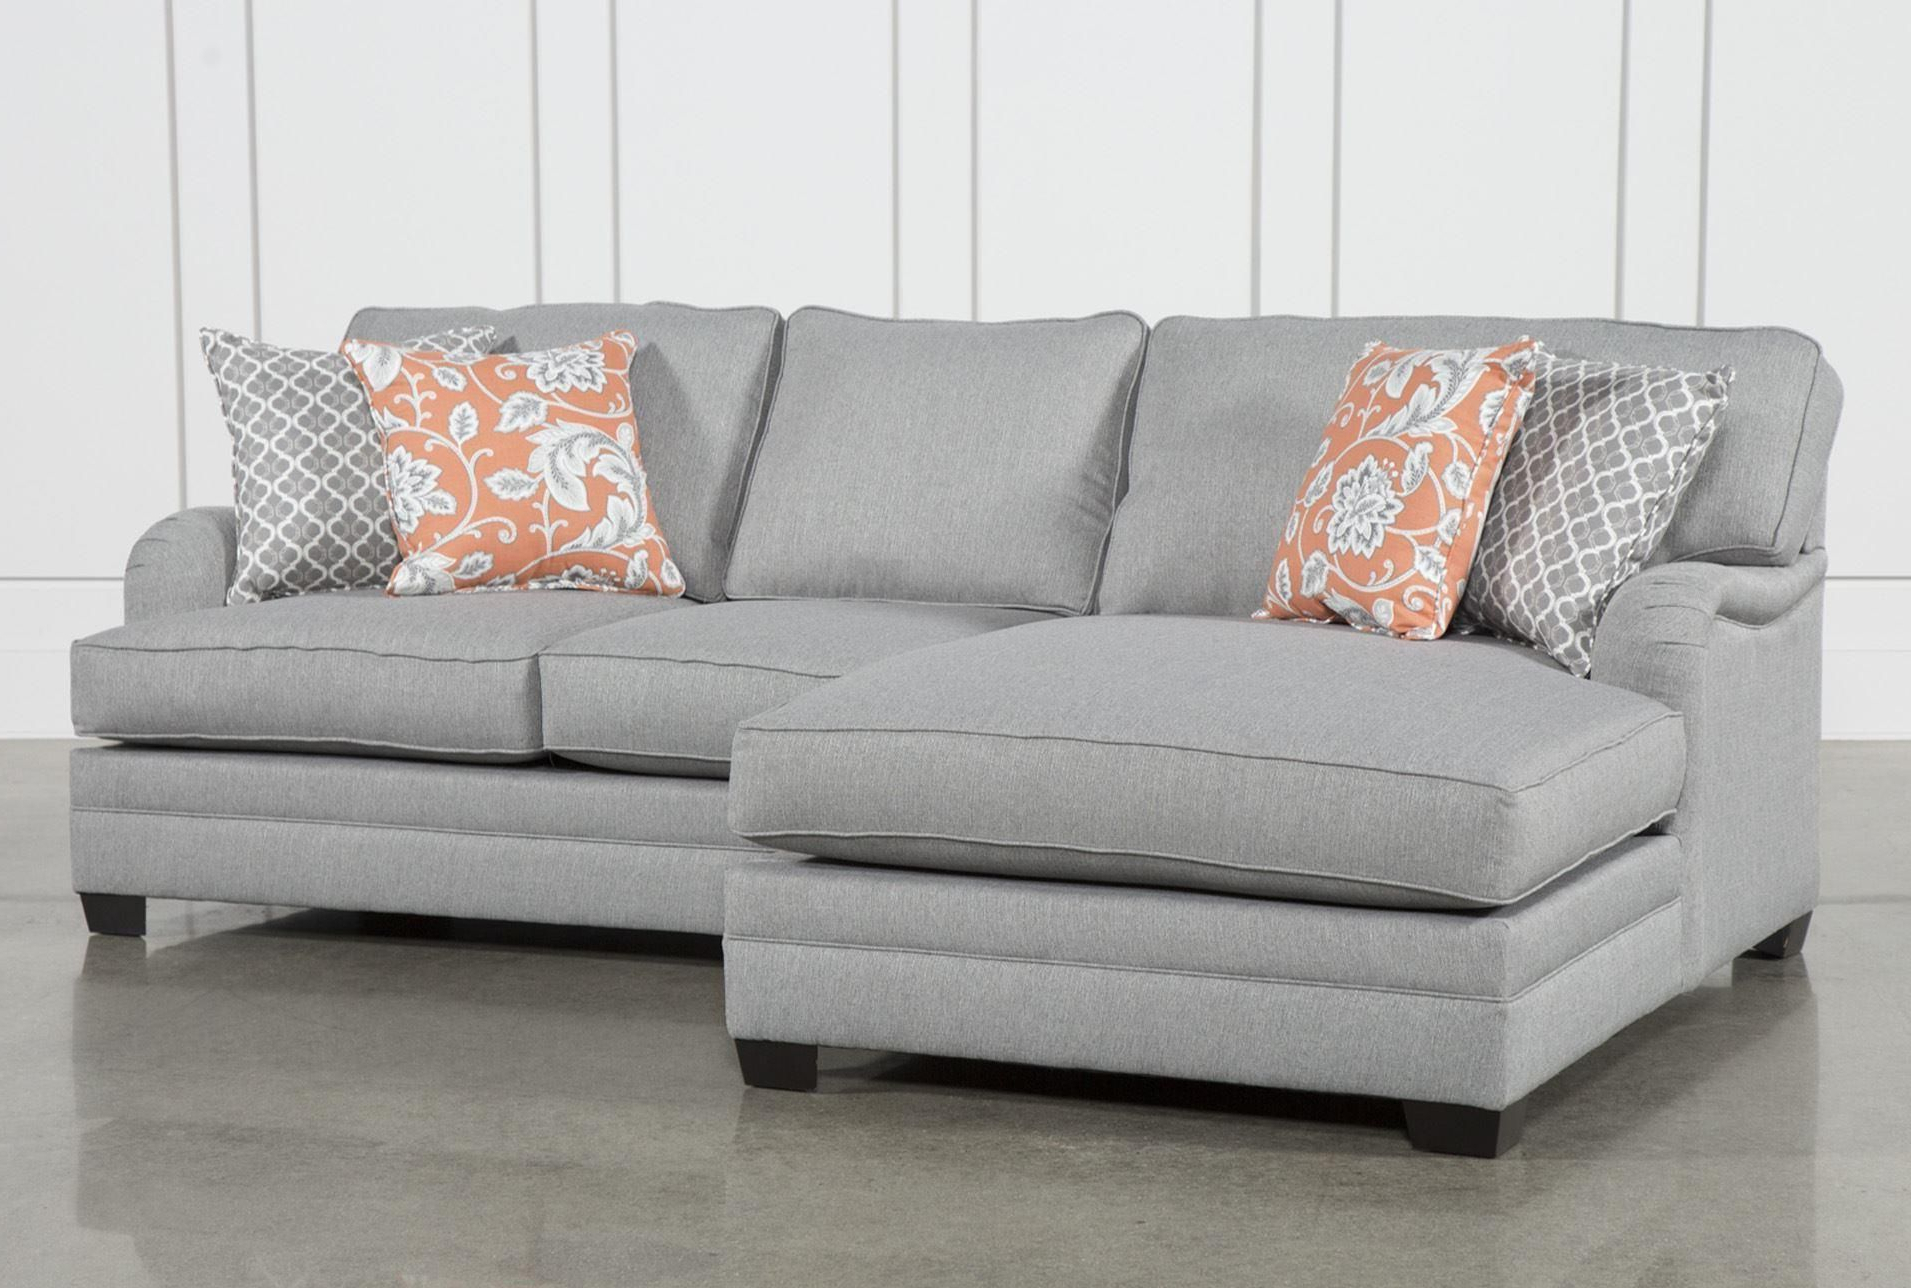 Well Liked Mcculla Sofa Sectionals With Reversible Chaise Regarding Marissa 2 Piece Sectional W/laf Chaise, Grey, Sofas (View 19 of 20)